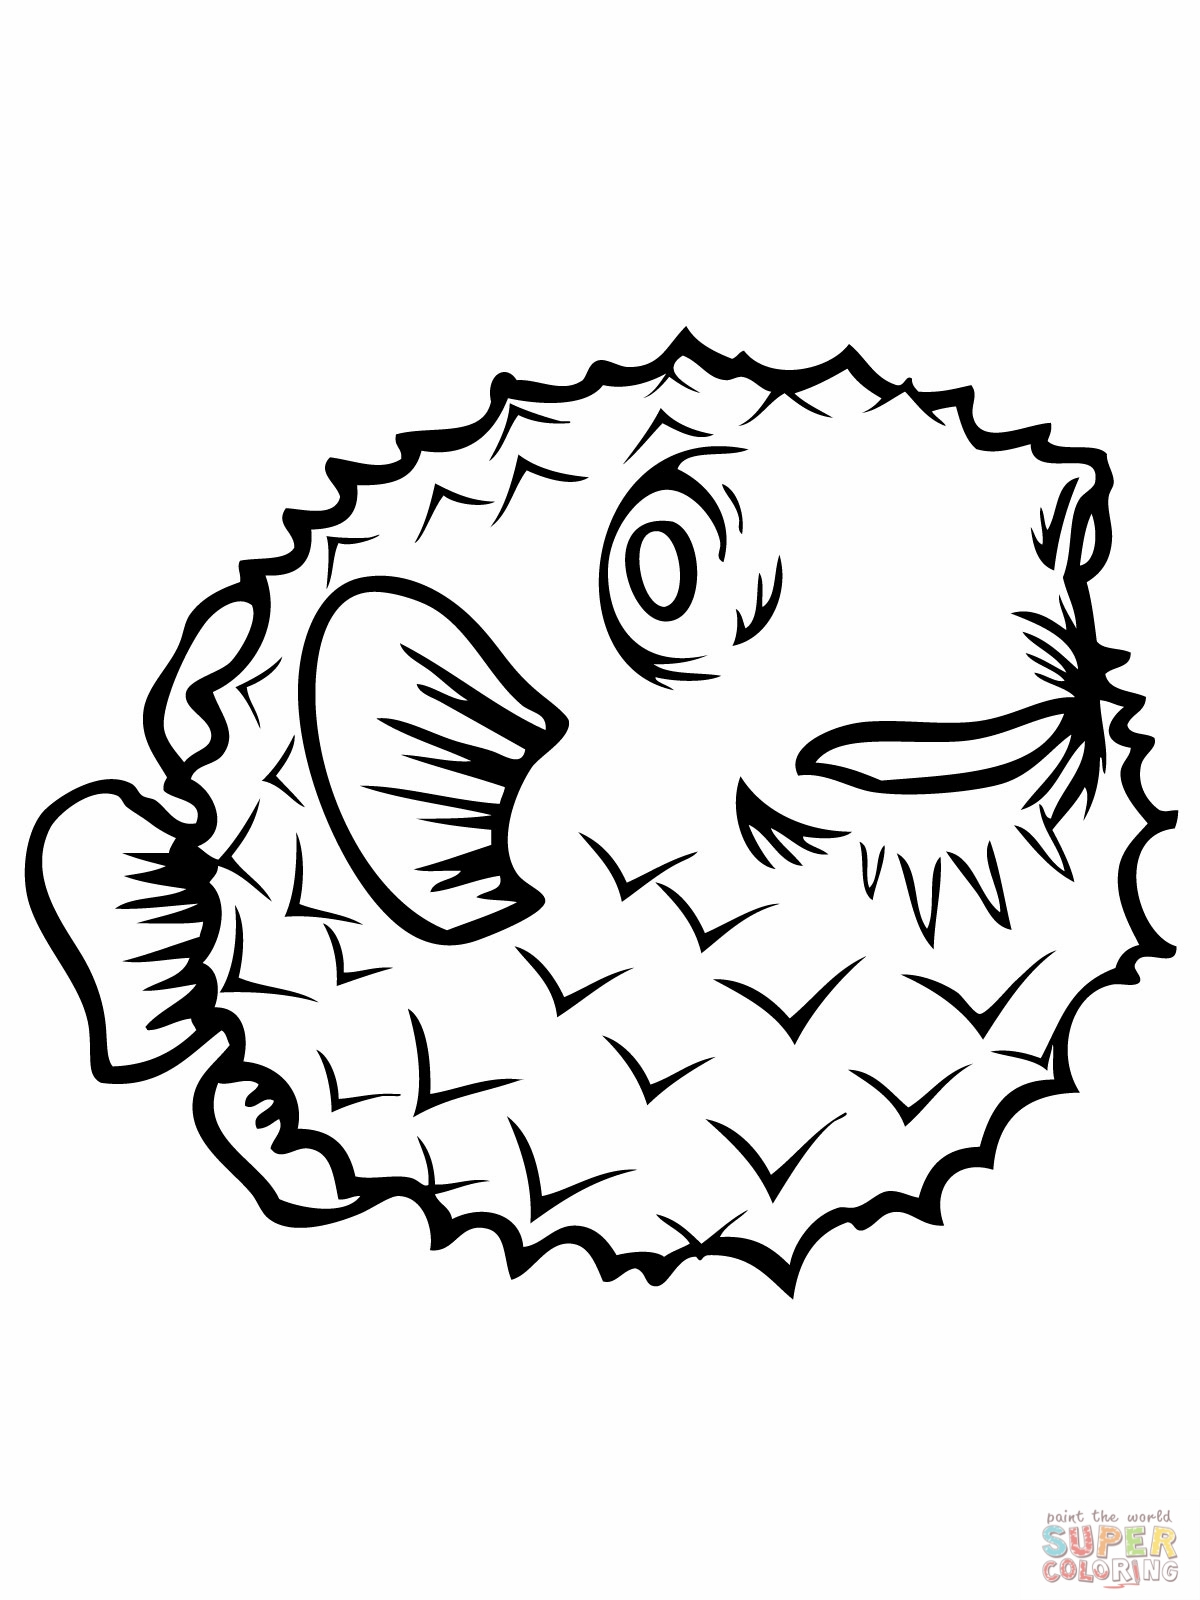 porcupine coloring page - line drawing of fish